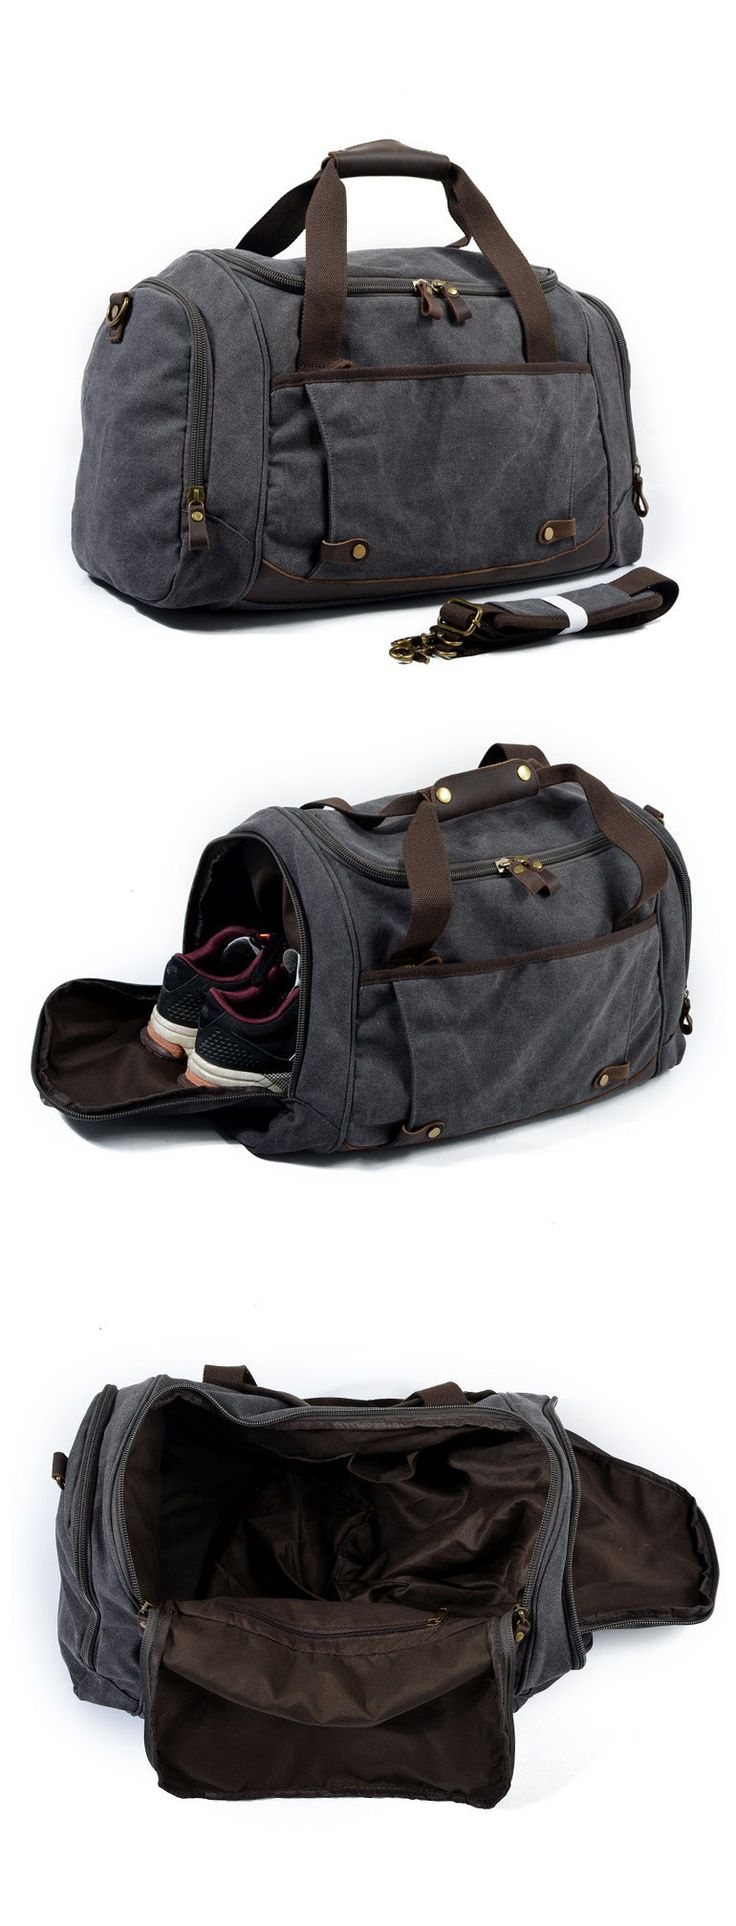 Handmade Waxed Canvas Travel Bag Duffle Bag Gym Bag